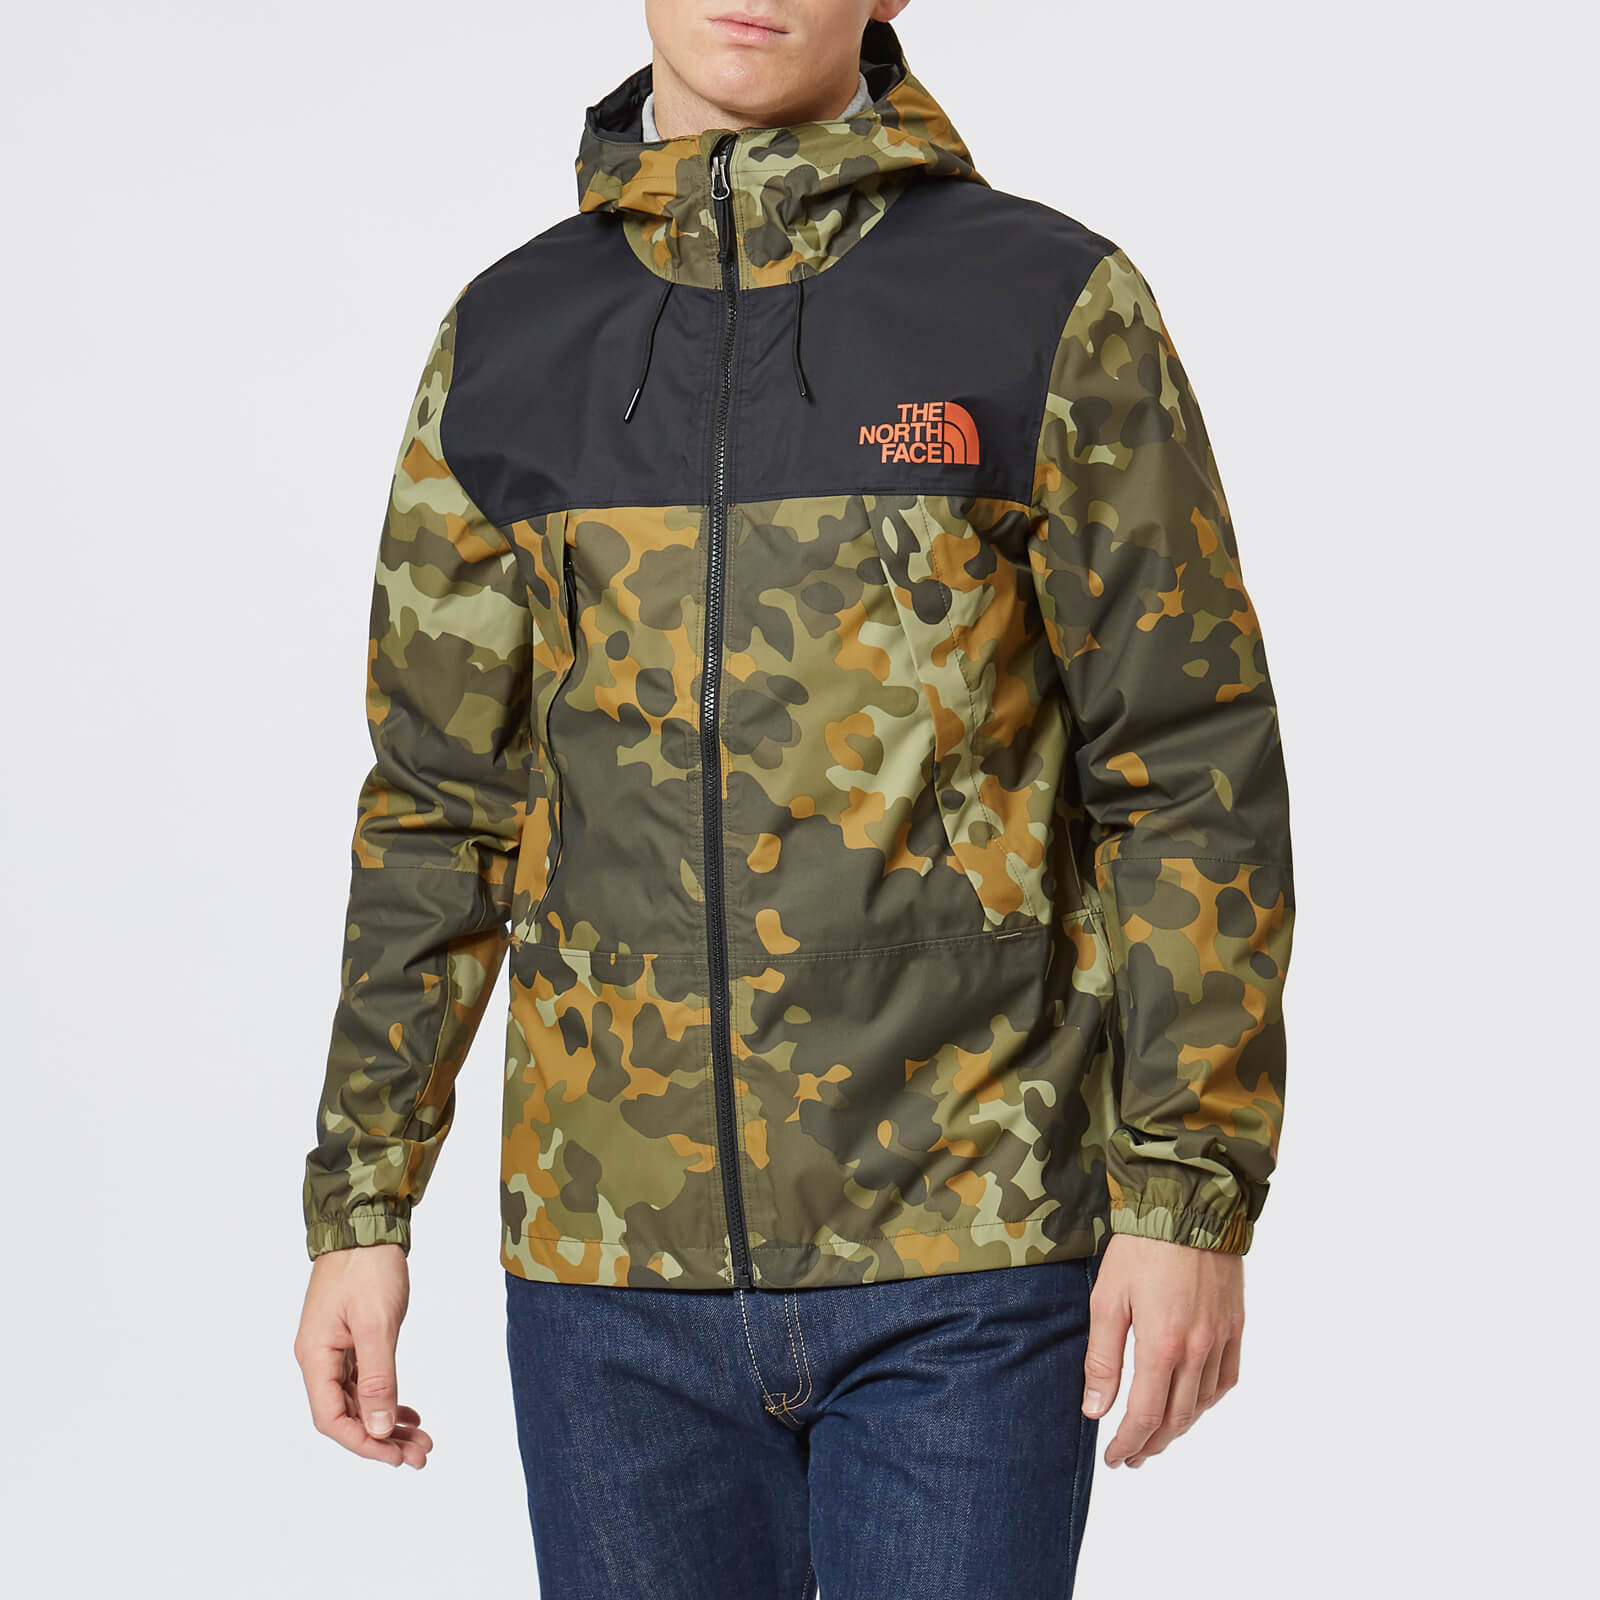 d62a581d22ecb ... The North Face Men's 1990 Mountain Q Jacket - New Taupe Green  Macrofleck Print